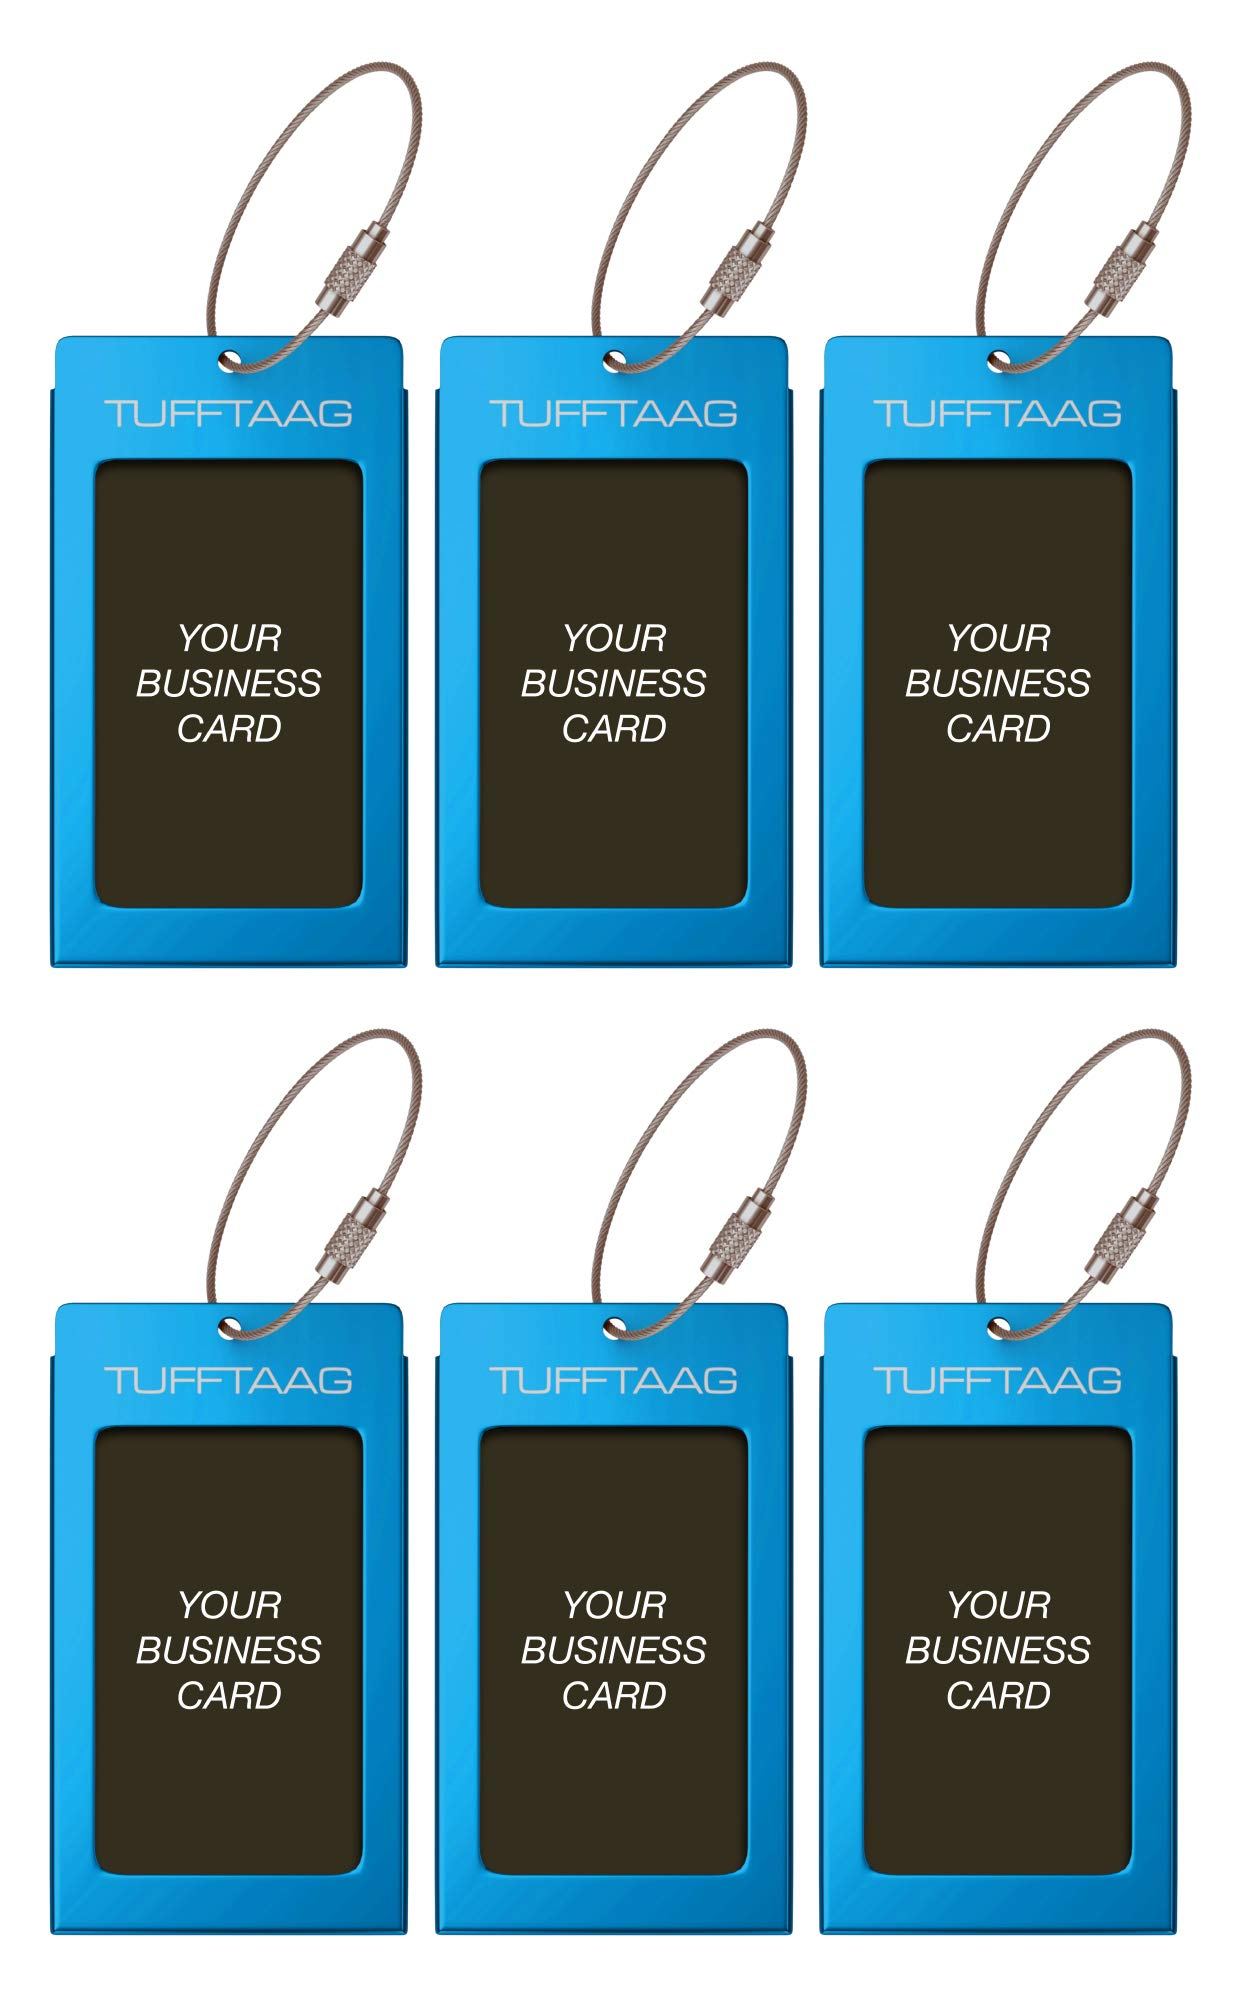 Luggage Tags TUFFTAAG for Business Cards, Metal Suitcase Labels, 6 Pack Bundle (6 Blue)